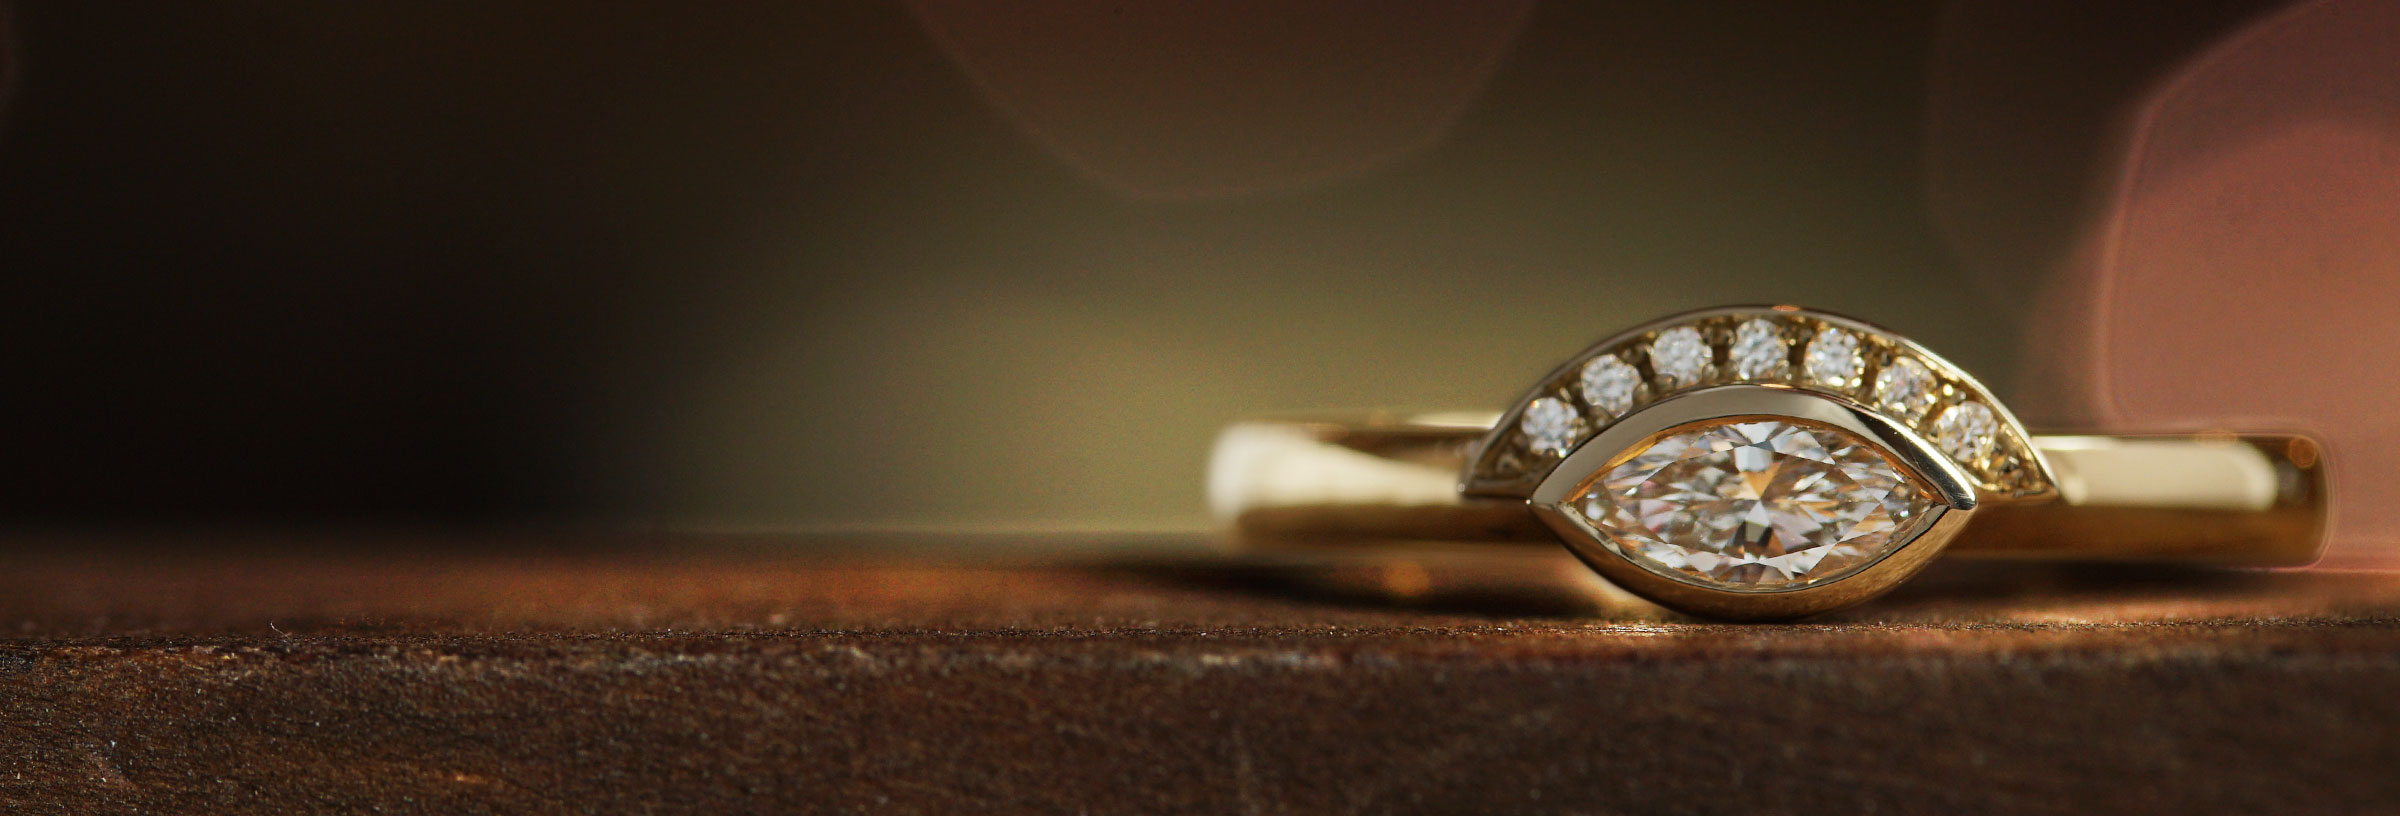 yellow-gold-marquise-cut-diamond-engagement-ring-with-half-halo